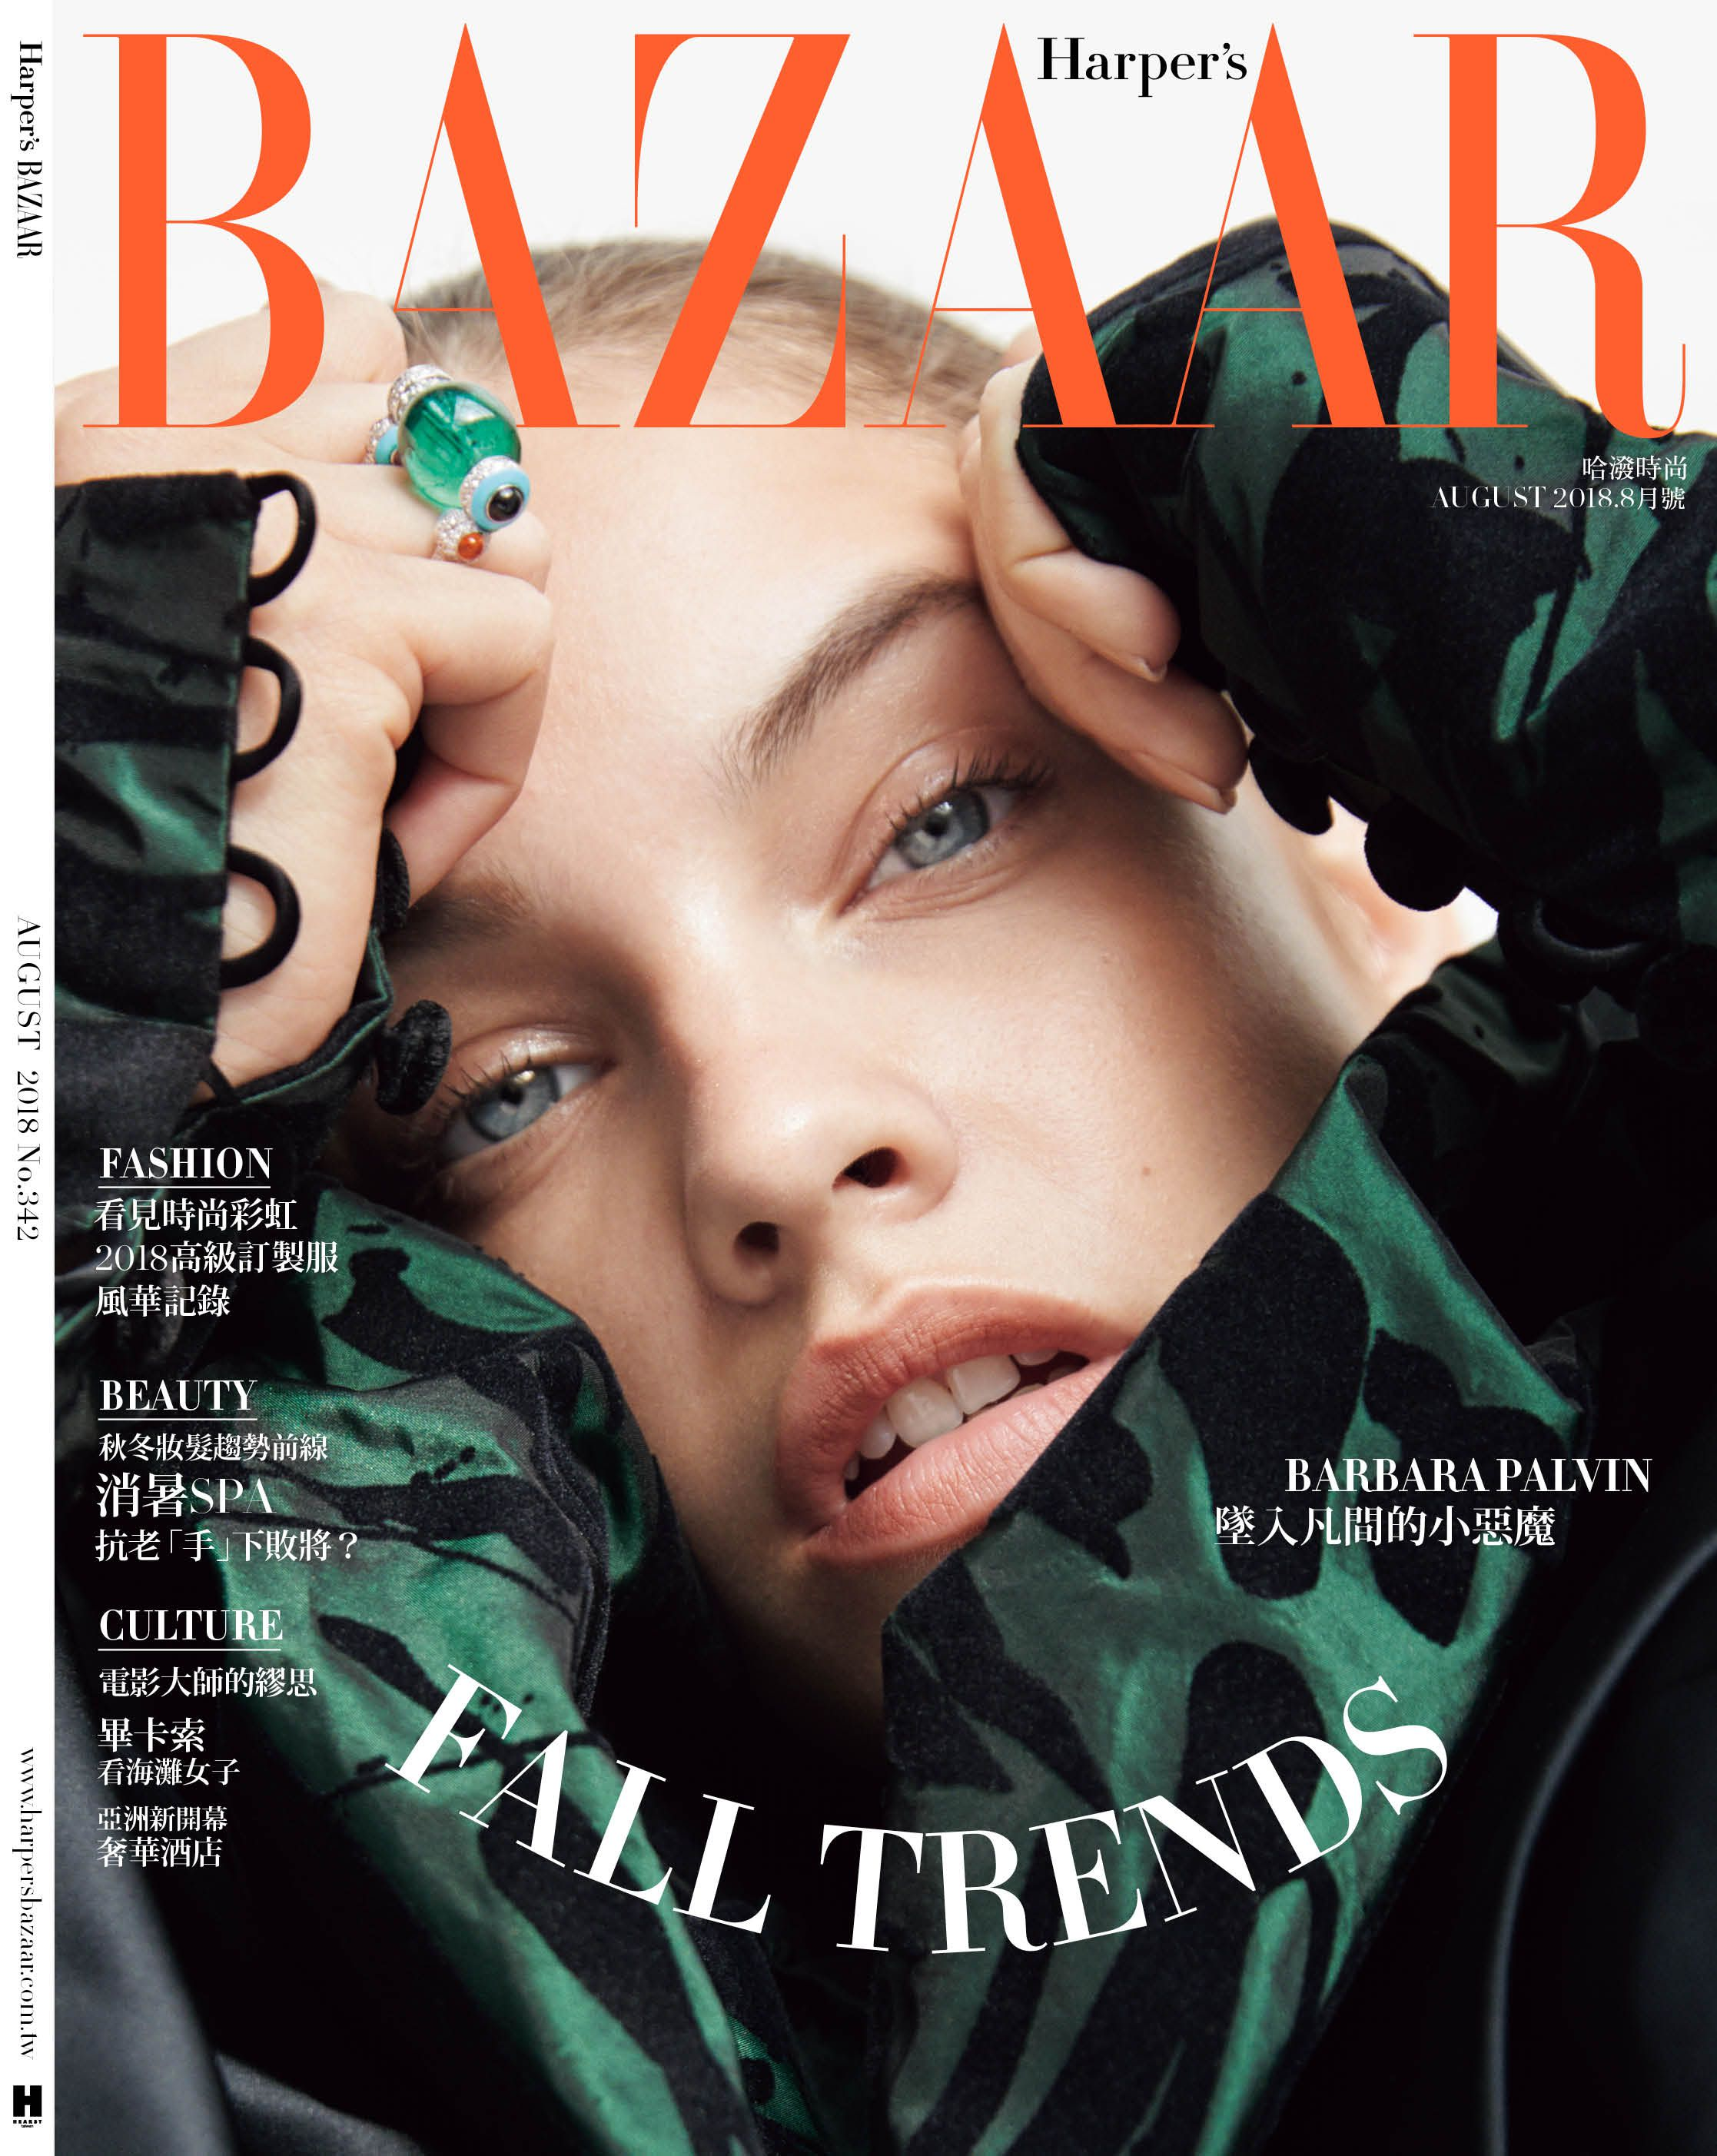 cover look_BARBARA PALVIN;dress_MARC JACOBS;ring__CARTIER HIGH JEWELRY;photographs_ DAVID ROEMER;realization_JERRY HSIEH;text_IRIS YEH;styling_ SARAH GORE REEVES;production_ ALEXEY GALETSKIY PRODUCTIONS;makeup_ WILLIAM BARTEL;hair_ OLIVIER LEBRUN;manicurist_ SEVERINE LOREAL;digital tech_ NIKLAS BERGSTRAND;photo assistant_ QUENTIN CHAMARD BOIS, PAUL ANTOINE GOUTAL;stylist's assistant_ KRISTI VELIAJ;location_PIN UP STUDIOS, PARIS, FRANCE